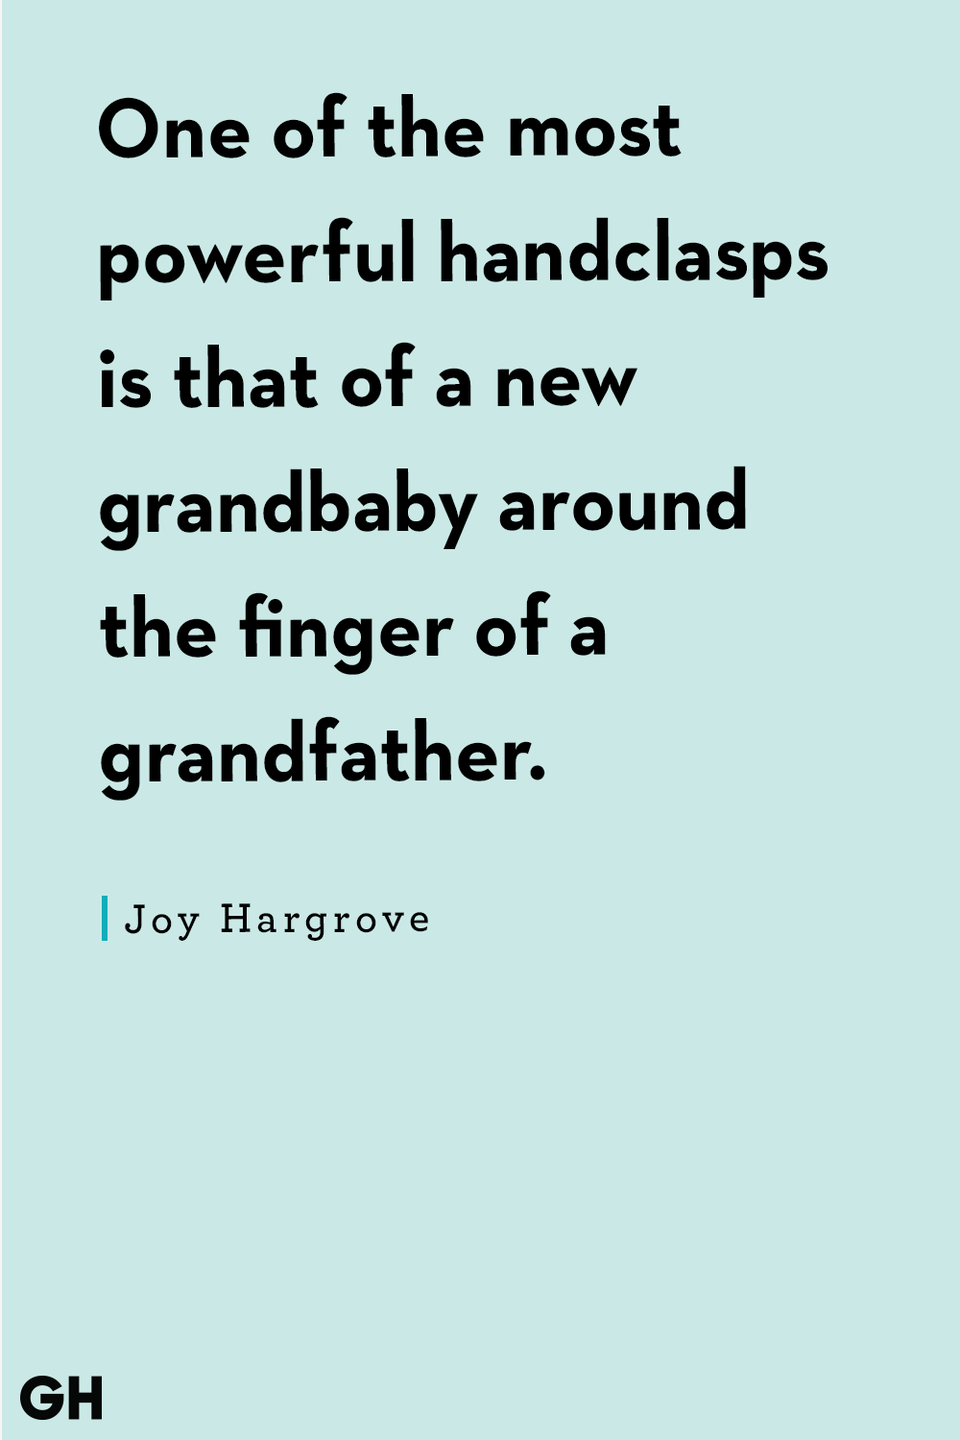 <p>One of the most powerful handclasps is that of a new grandbaby around the finger of a grandfather.</p>